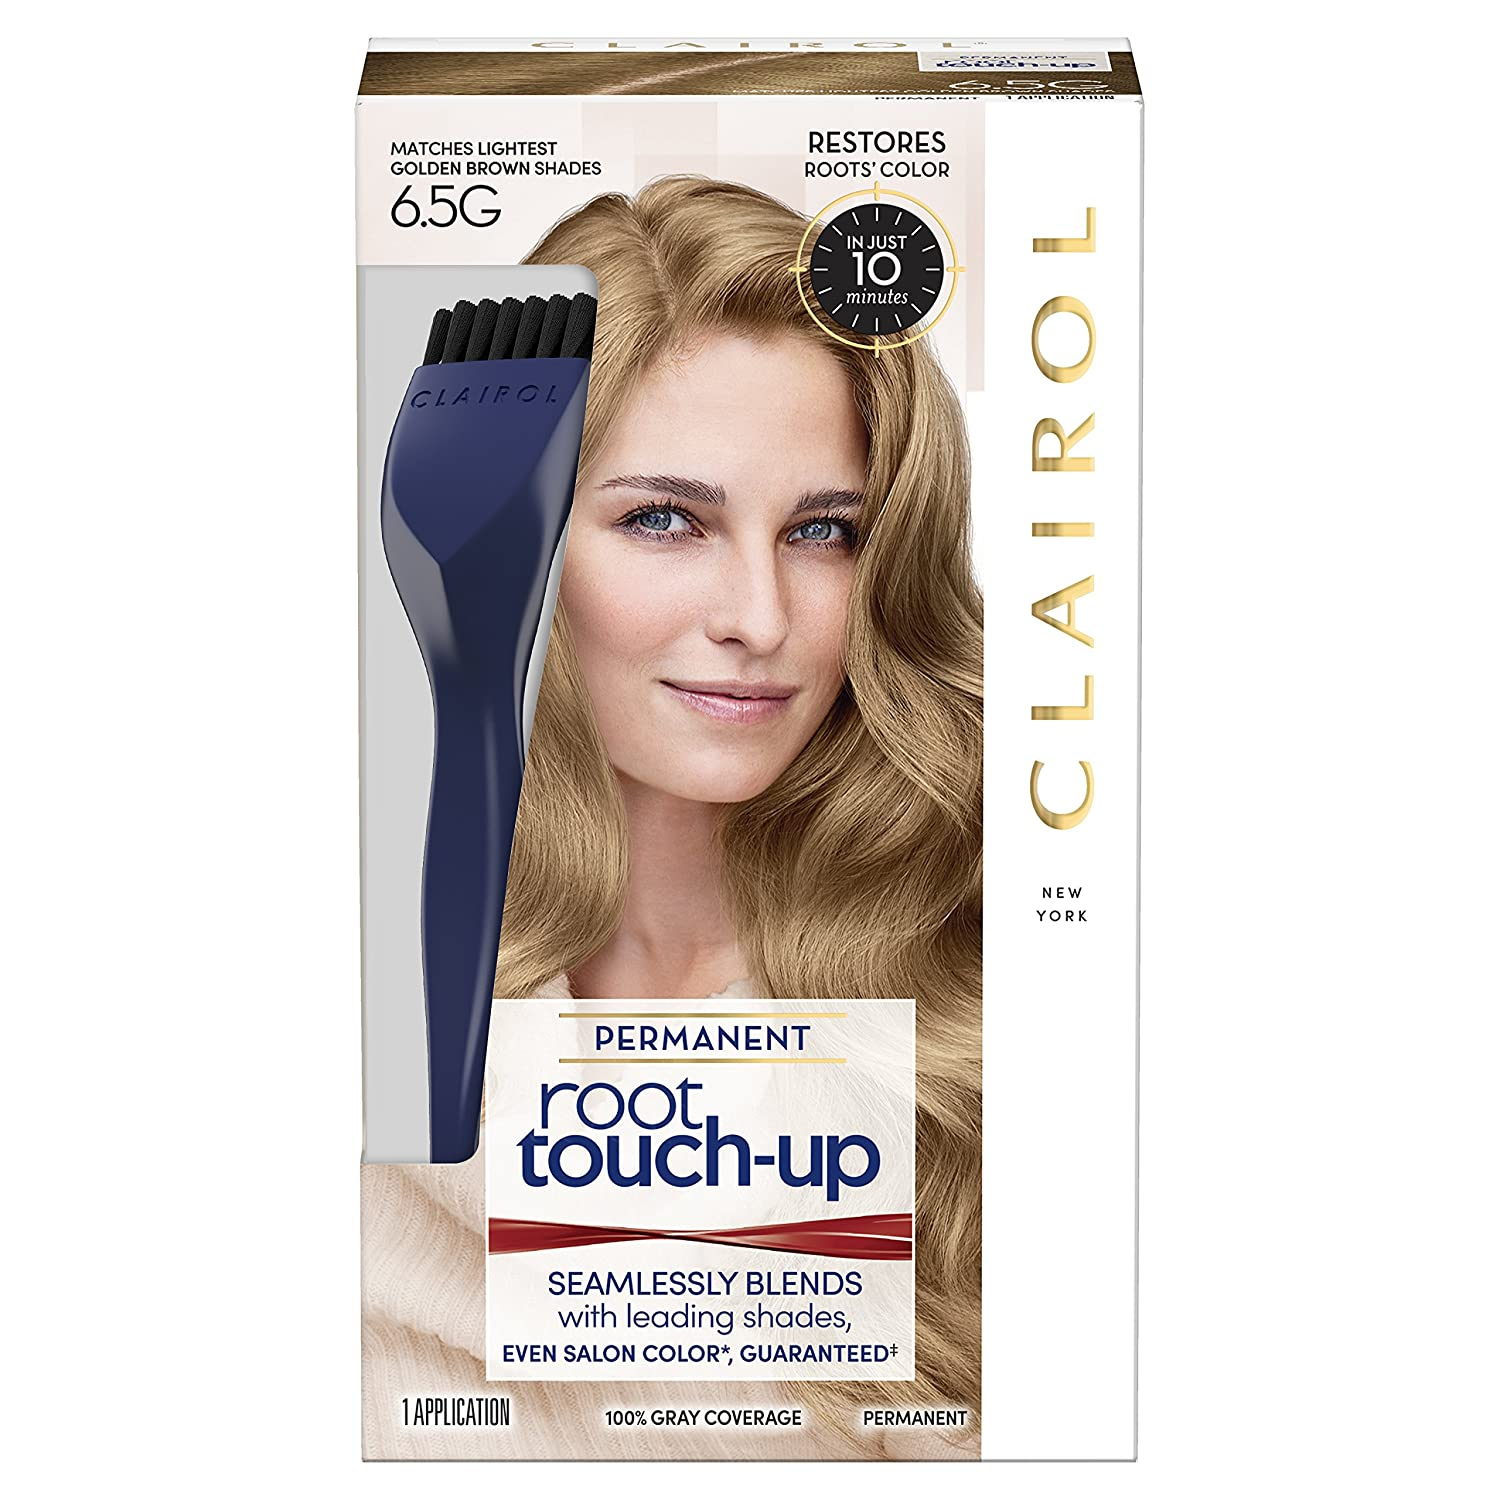 Clairol Nice 'n Easy Root Touch-Up 5G Kit (Pack of 2) Matches Medium Golden Brown Shades of Hair Coloring, Includes Precision Brush Tool NA